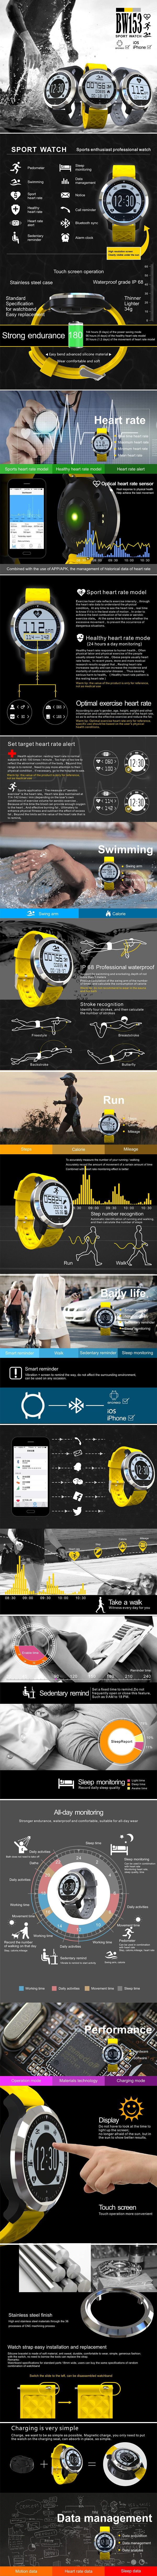 GX-BW153 Smart Bracelet Sleep Heart Rate Monitor IP68 Waterproof Fitness Tracker Sport Watch at Banggood